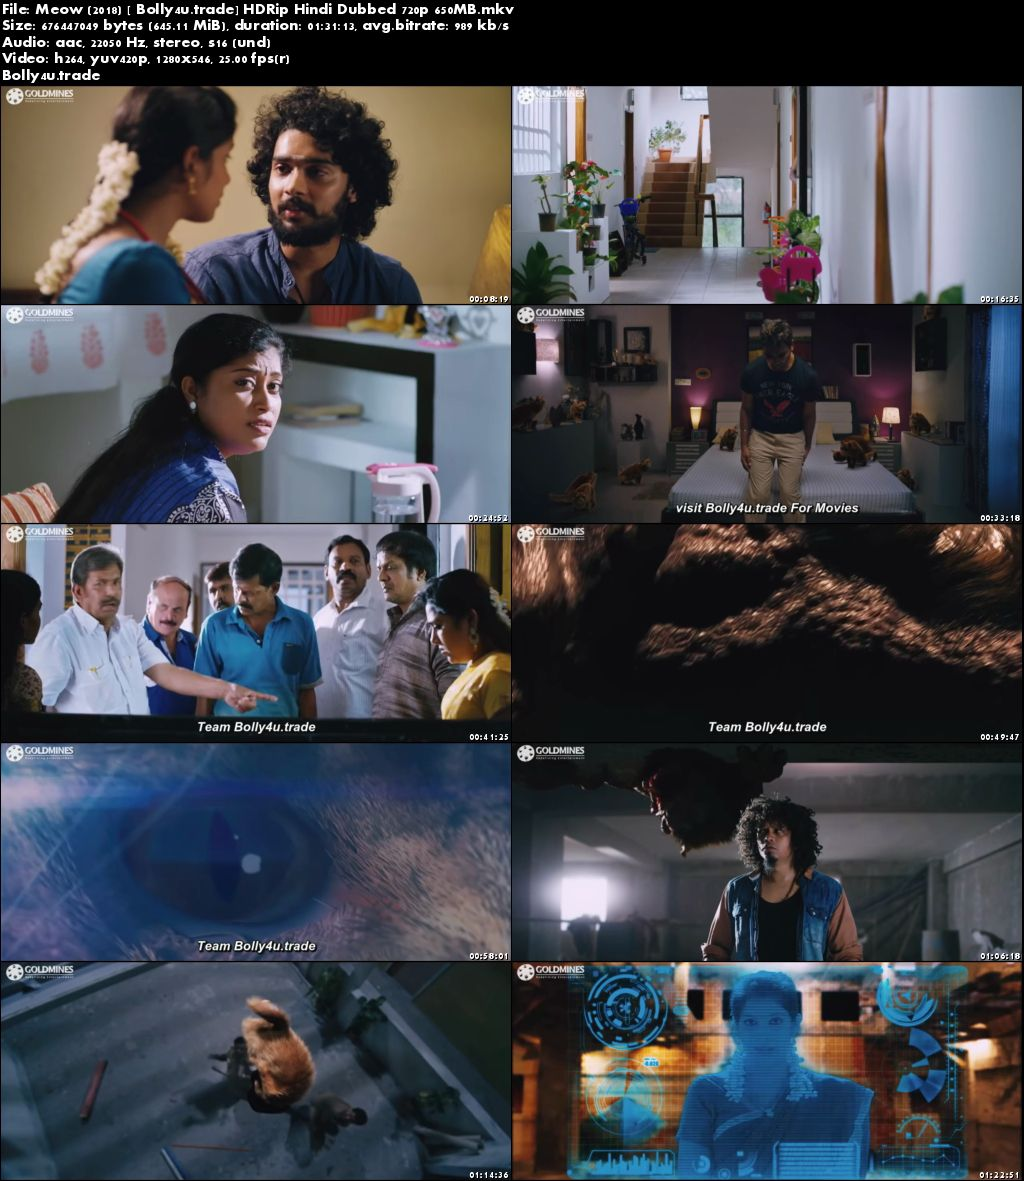 Meow 2018 HDRip 300Mb Full Hindi Dubbed Movie Download 480p